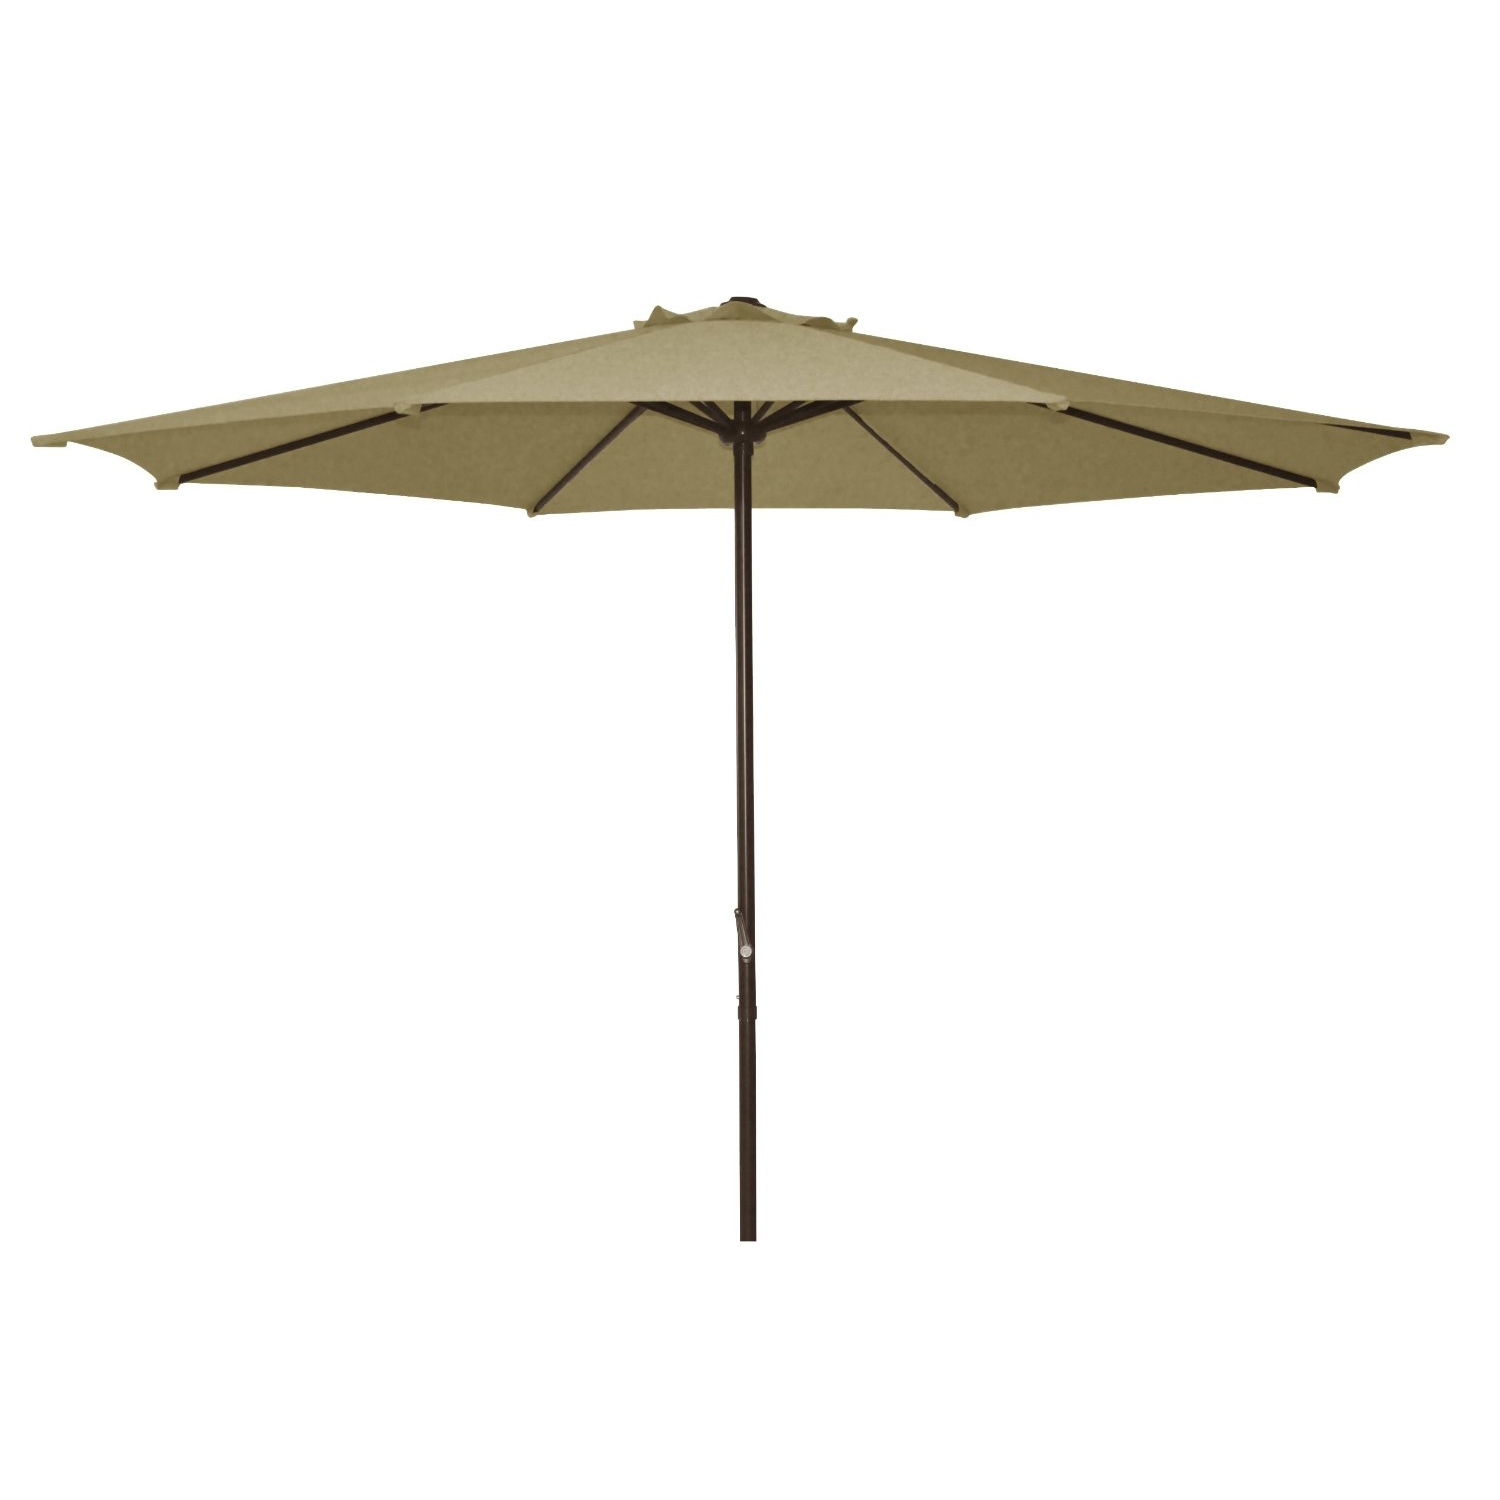 9 Foot Patio Umbrella With Beige Polyester Fabric Shade, ABSU45019F : The 9  Ft Polyester